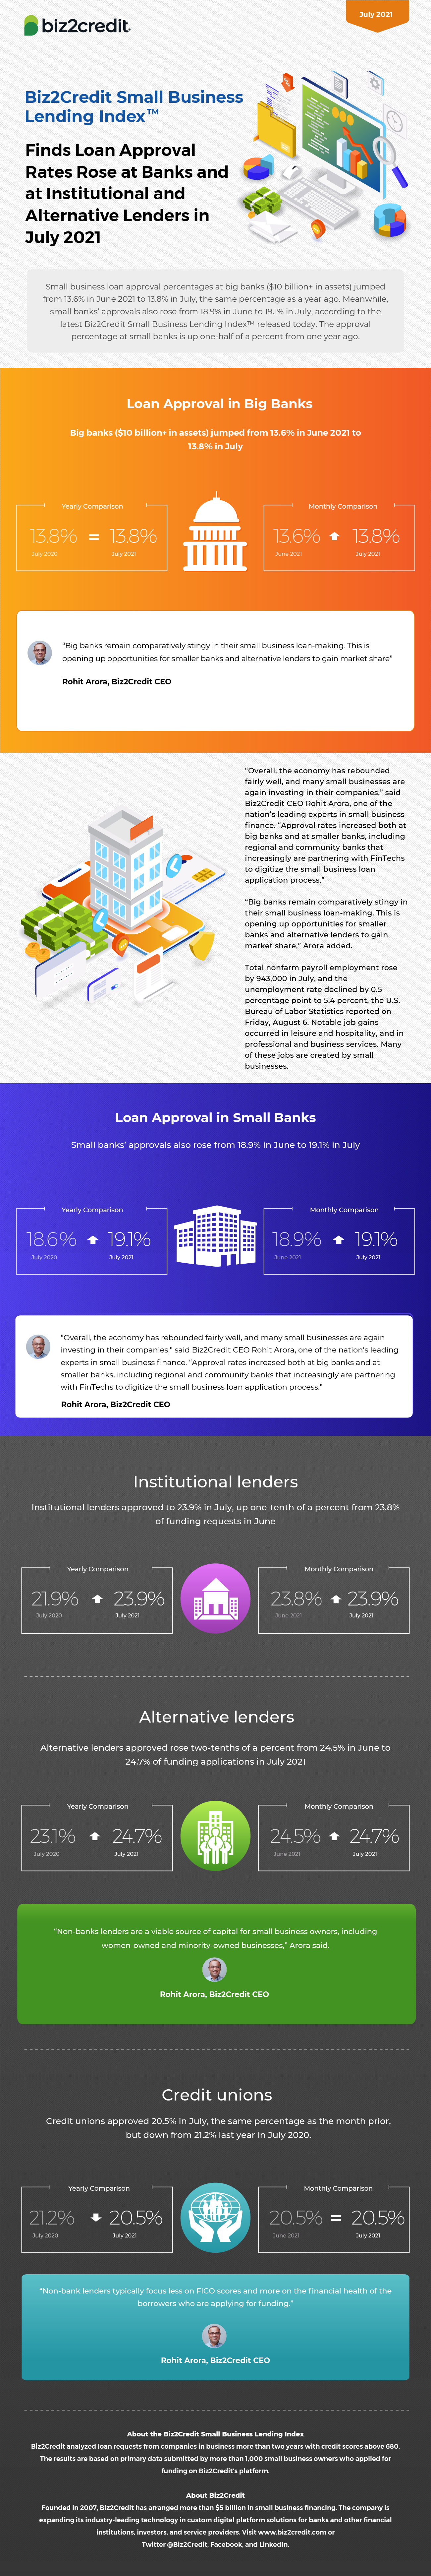 July 2021 Lending Index Infographic